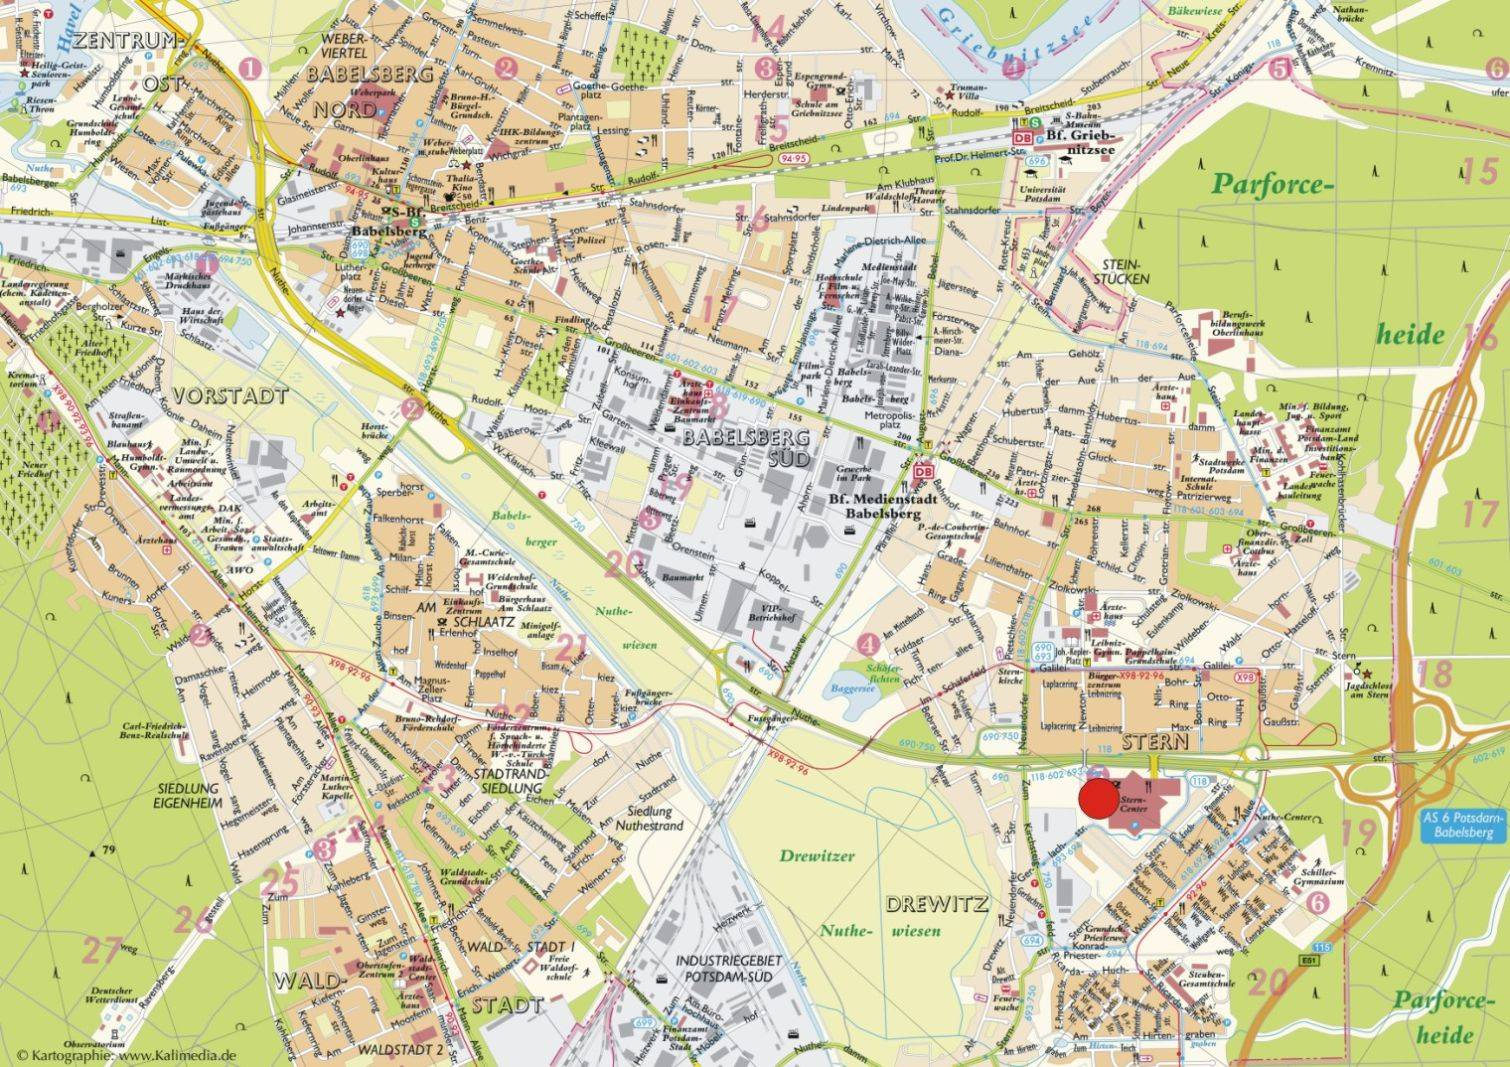 Maps Saarbrücken Large Potsdam Maps For Free Download And Print High Resolution